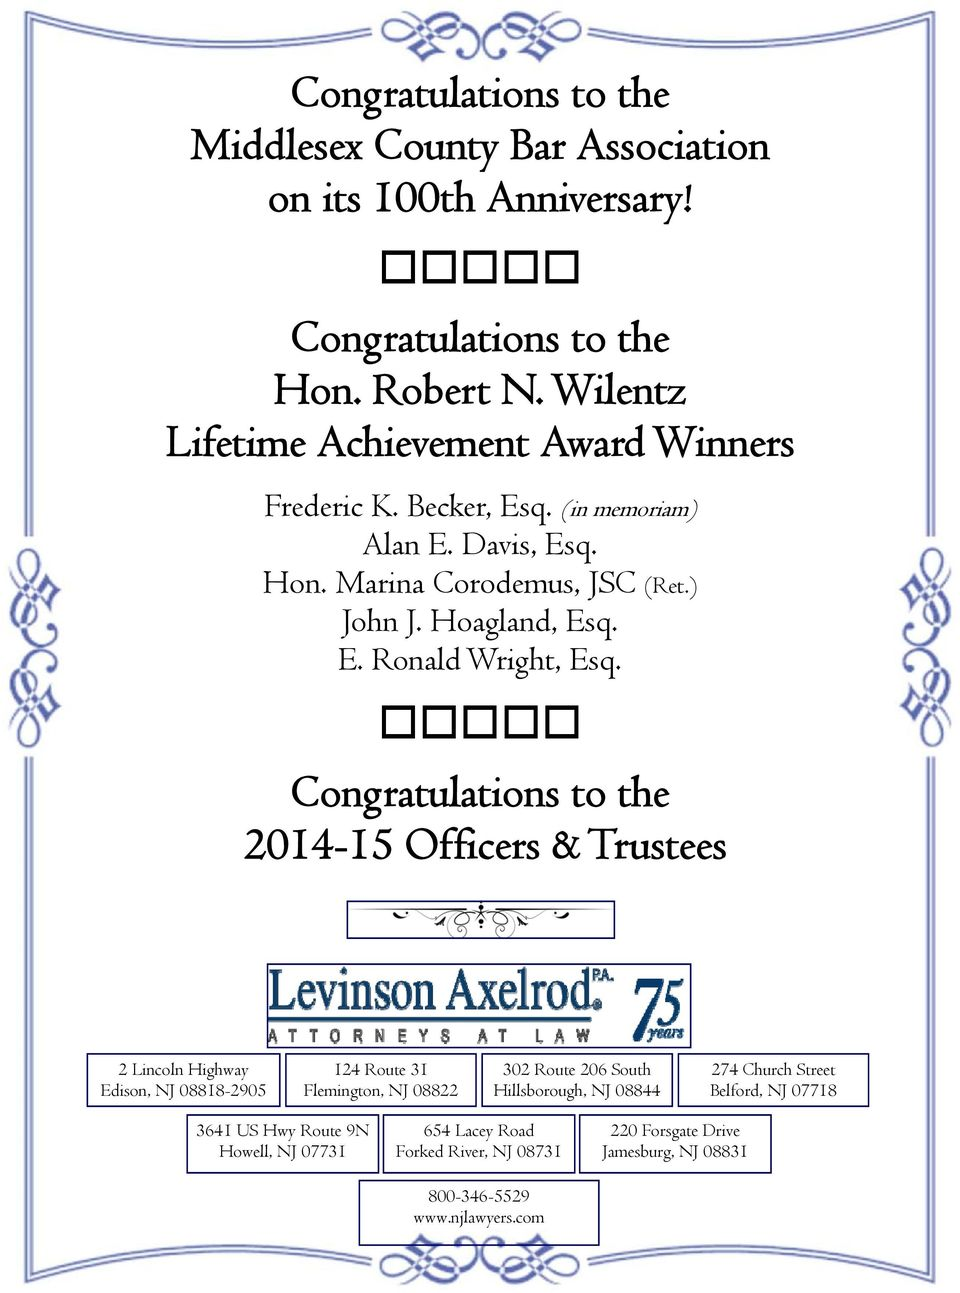 Congratulations to the 2014-15 Officers & Trustees 2 Lincoln Highway Edison, NJ 08818-2905 124 Route 31 Flemington, NJ 08822 302 Route 206 South Hillsborough, NJ